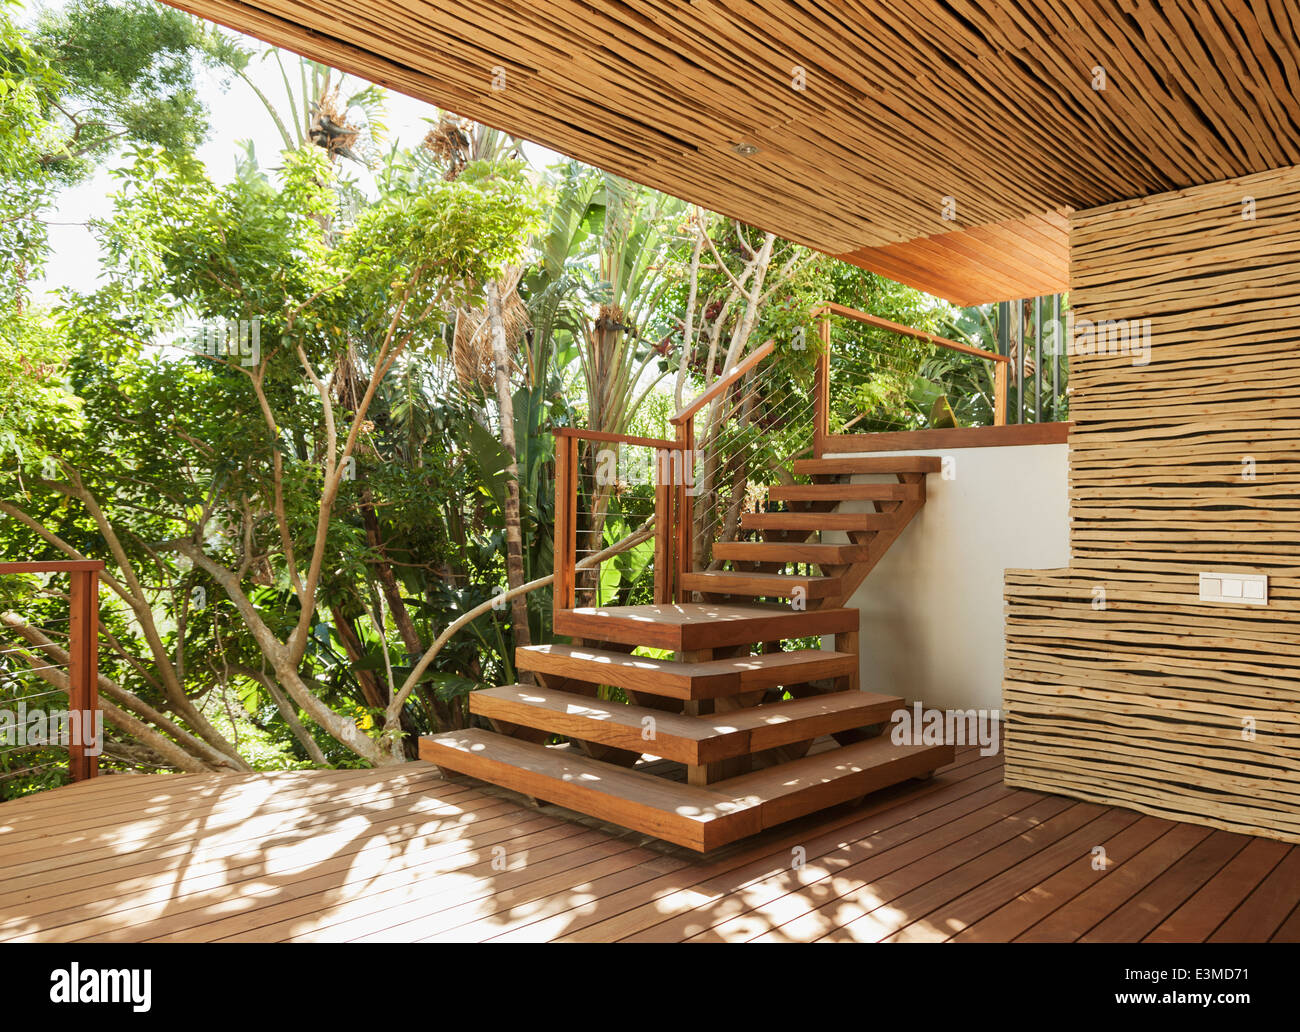 Wooden stairs and deck - Stock Image